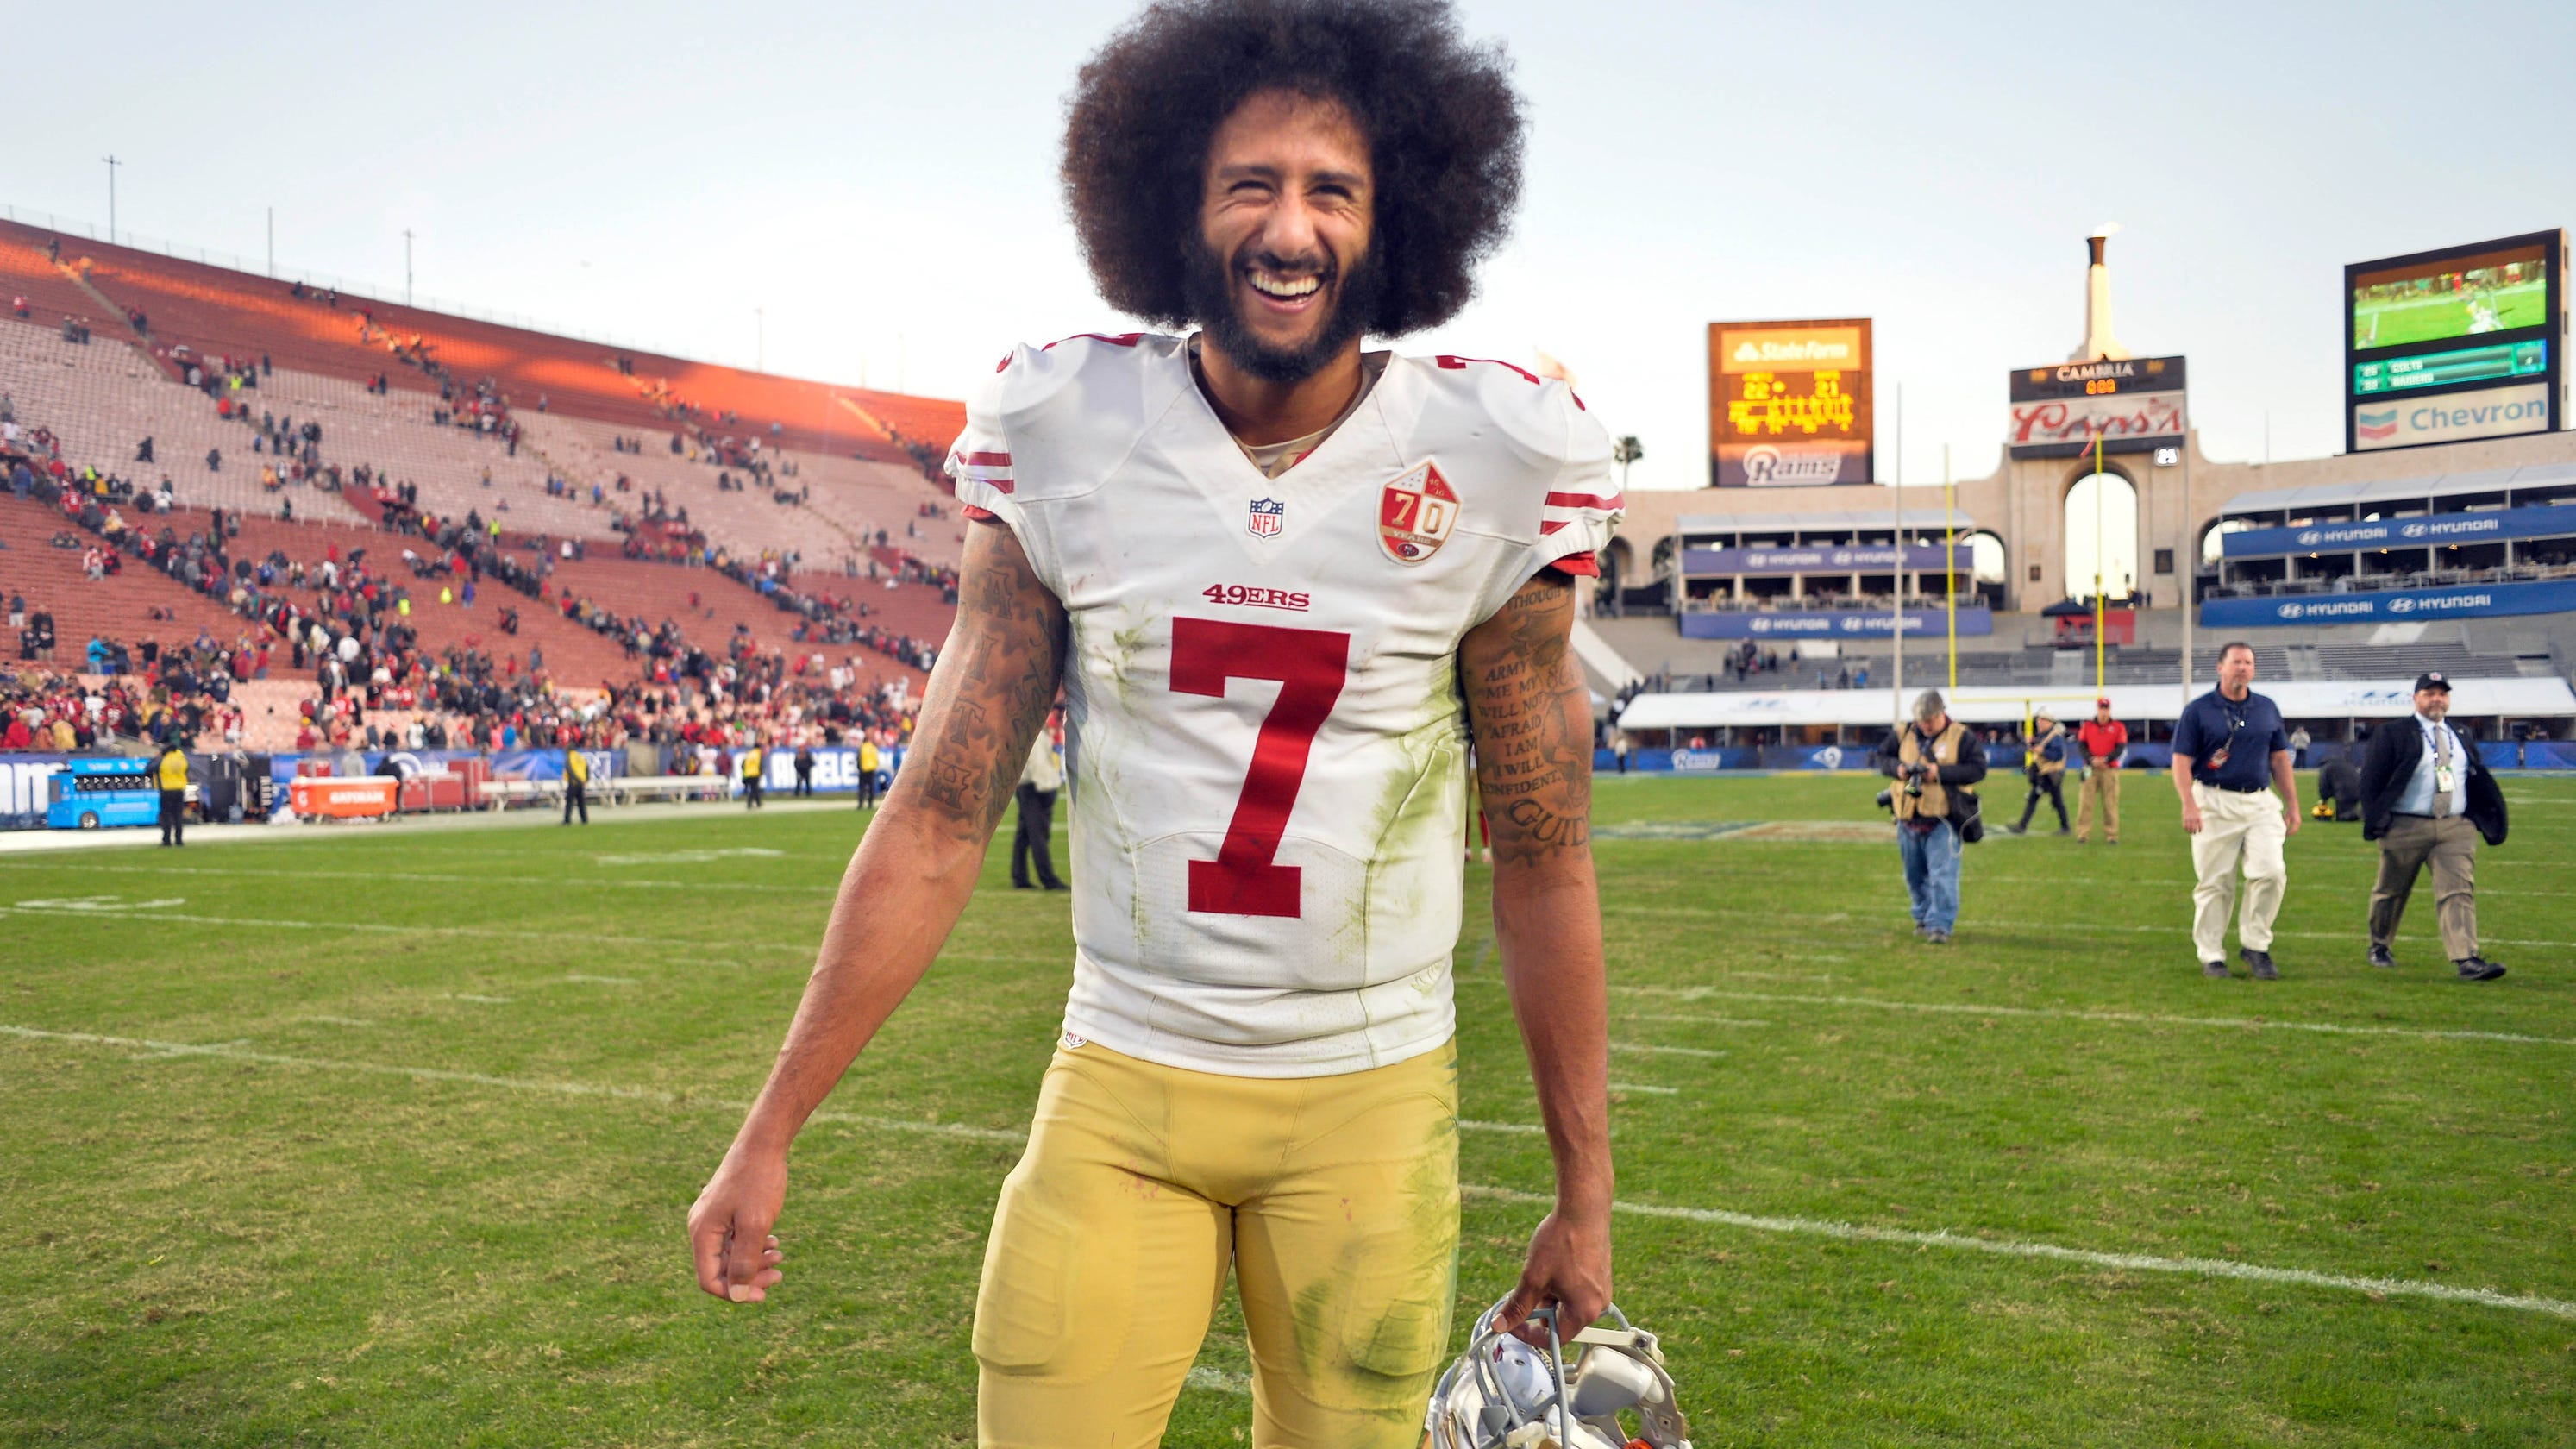 7a0f9e31e Don t ask if Colin Kaepernick is returning to NFL — your team probably  already passed on him